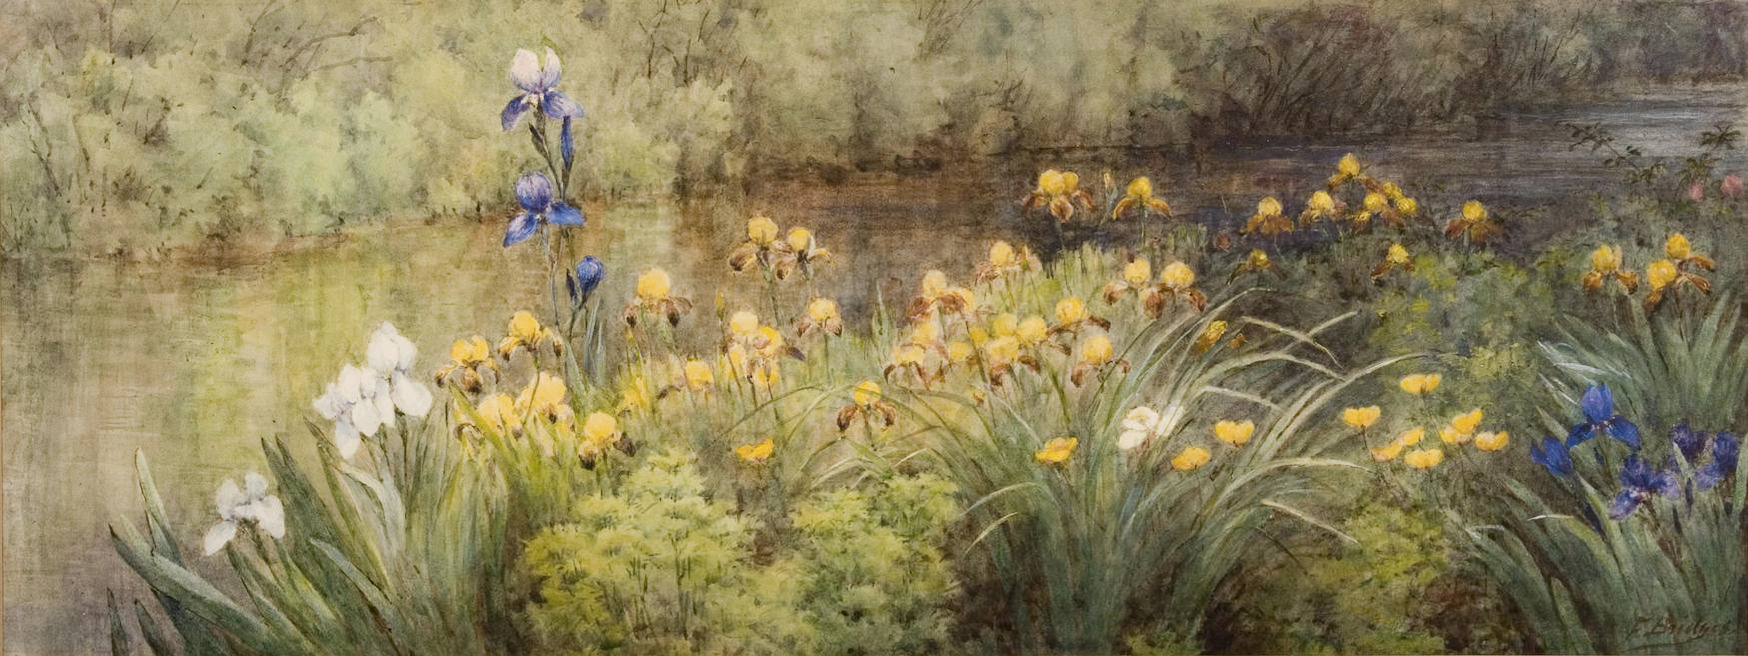 Irises along the River, by Fidelia Bridges, c. 1908